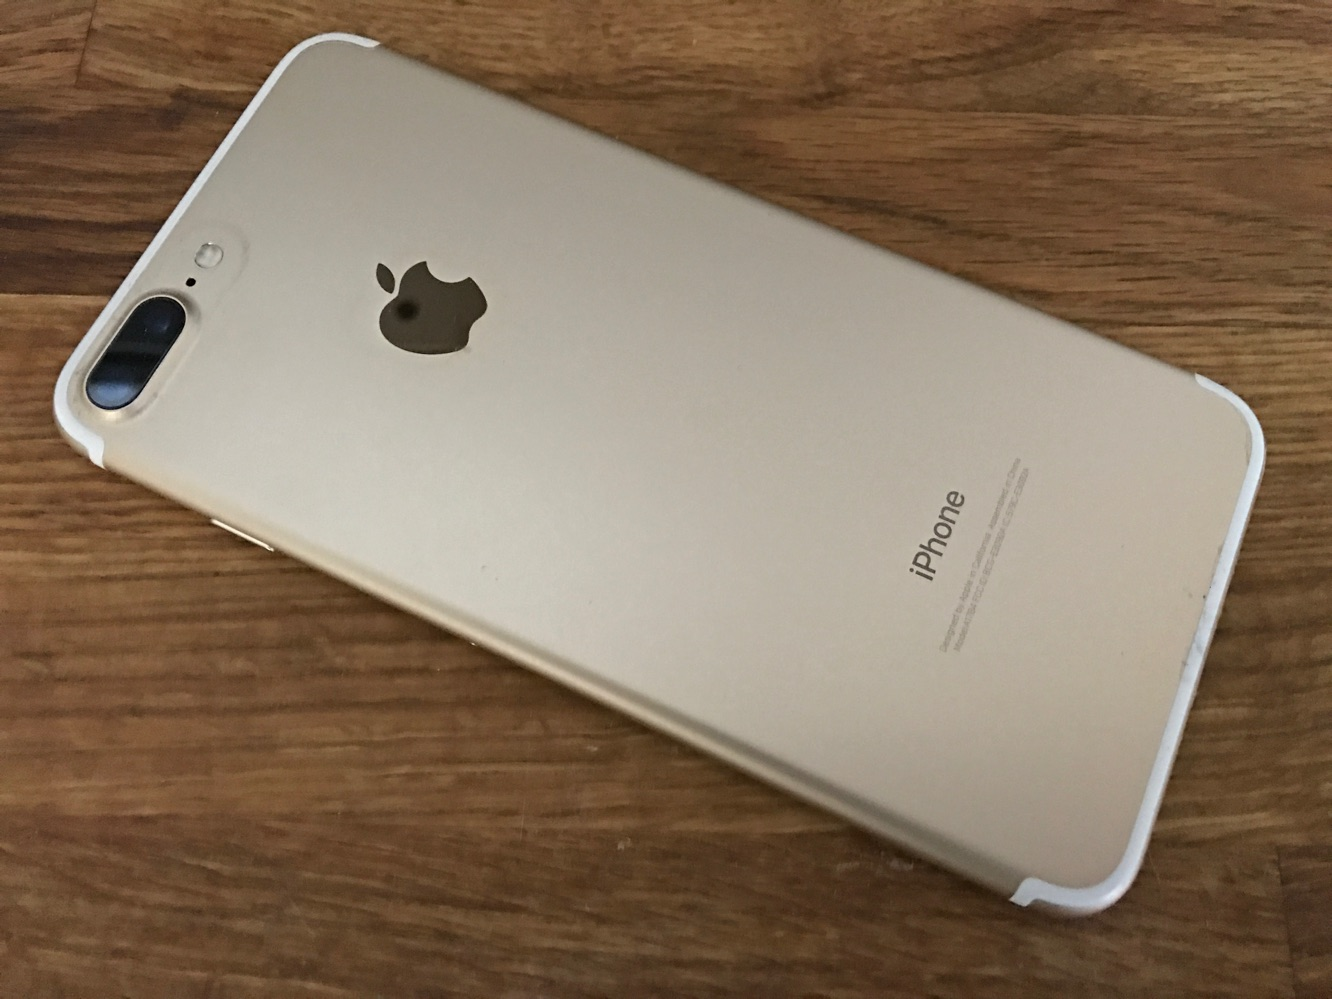 News: Apple creates mail-in option for iPhone Exchange program